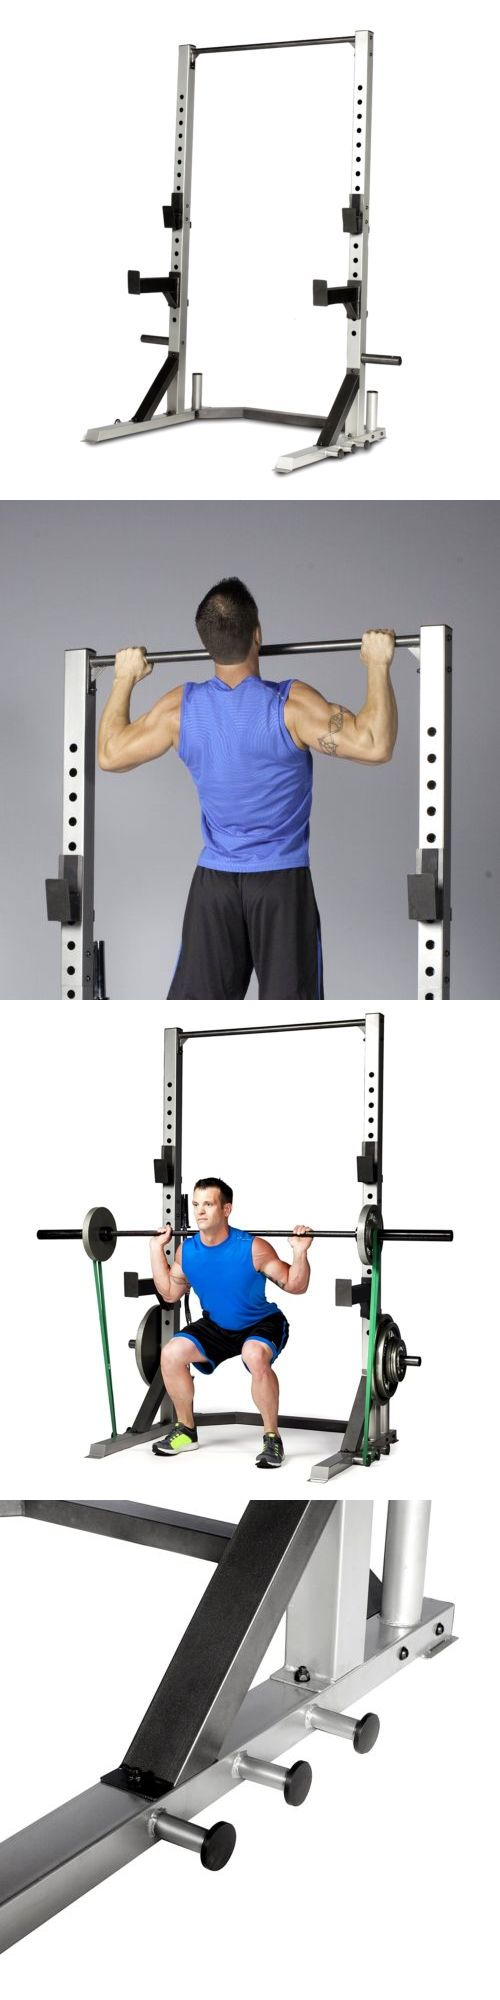 Power Racks and Smith Machines 179815: Strength Power Lifting Rack Weight Stand Squat Fitness Pull Up Bench Press Cage -> BUY IT NOW ONLY: $240.77 on eBay!